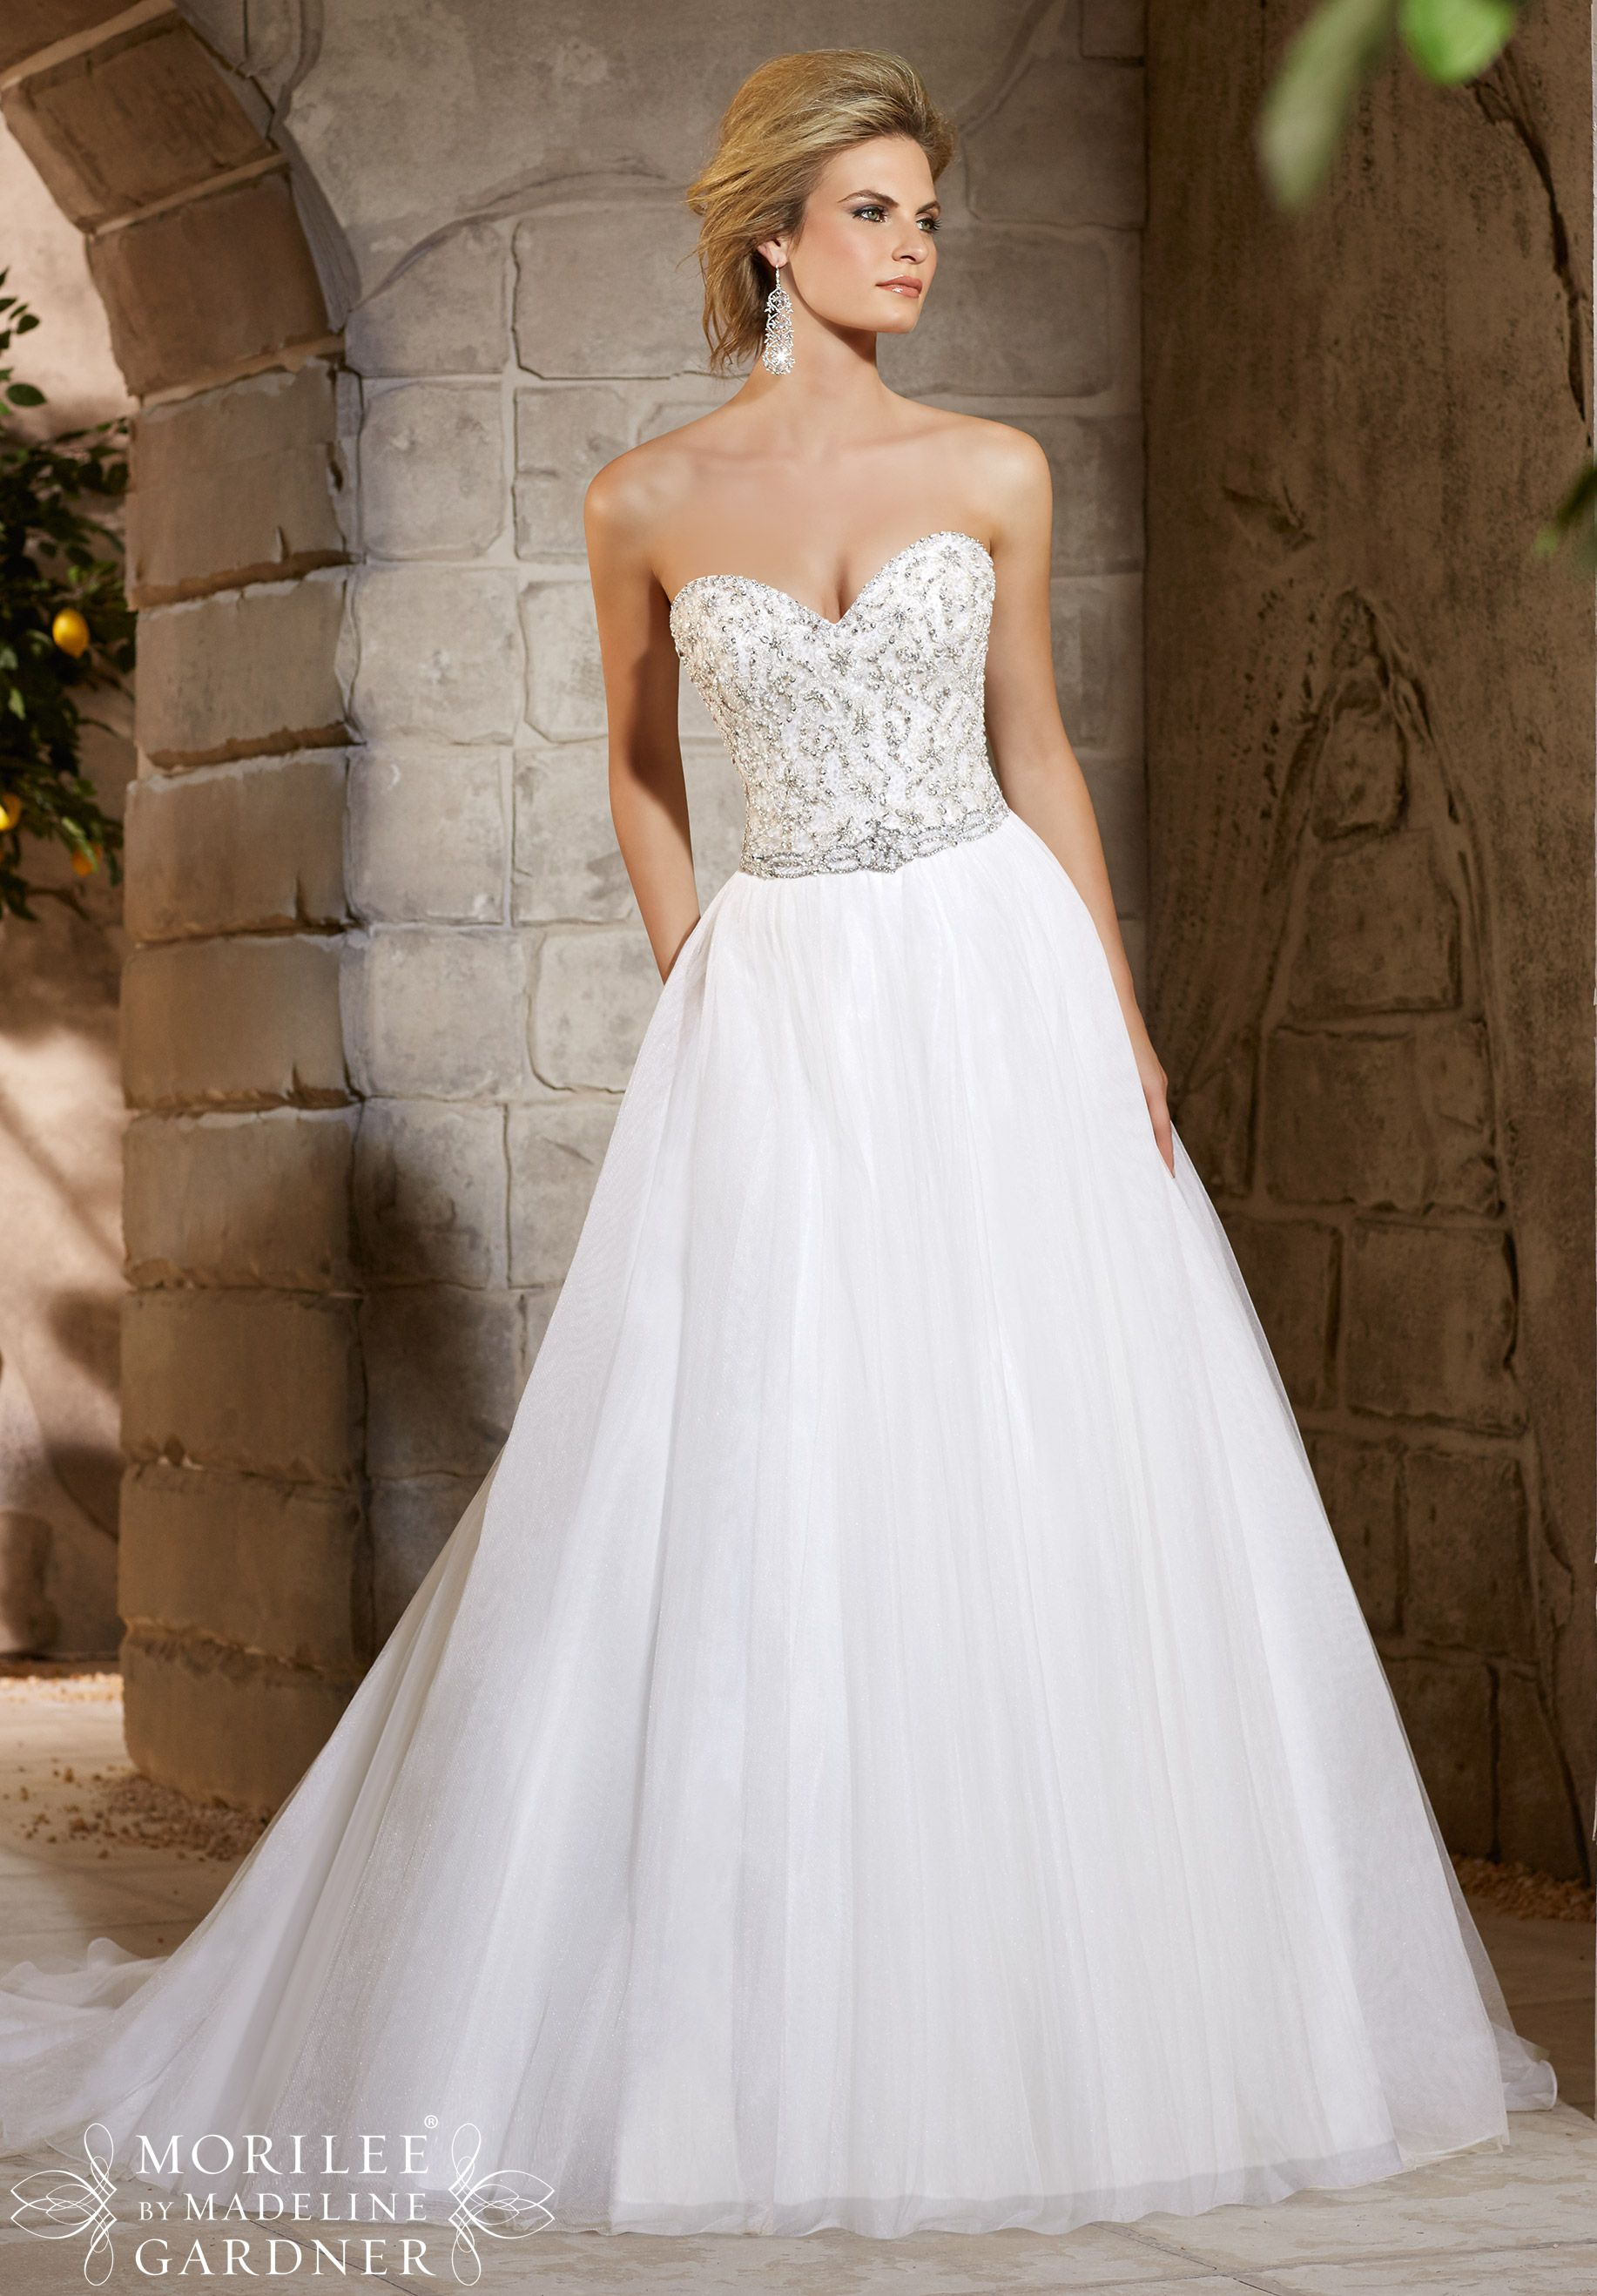 beaded wedding dress Wedding Dresses Diamante and Crystal Beading Decorates the Alencon Lace Bodice Onto the Soft Net